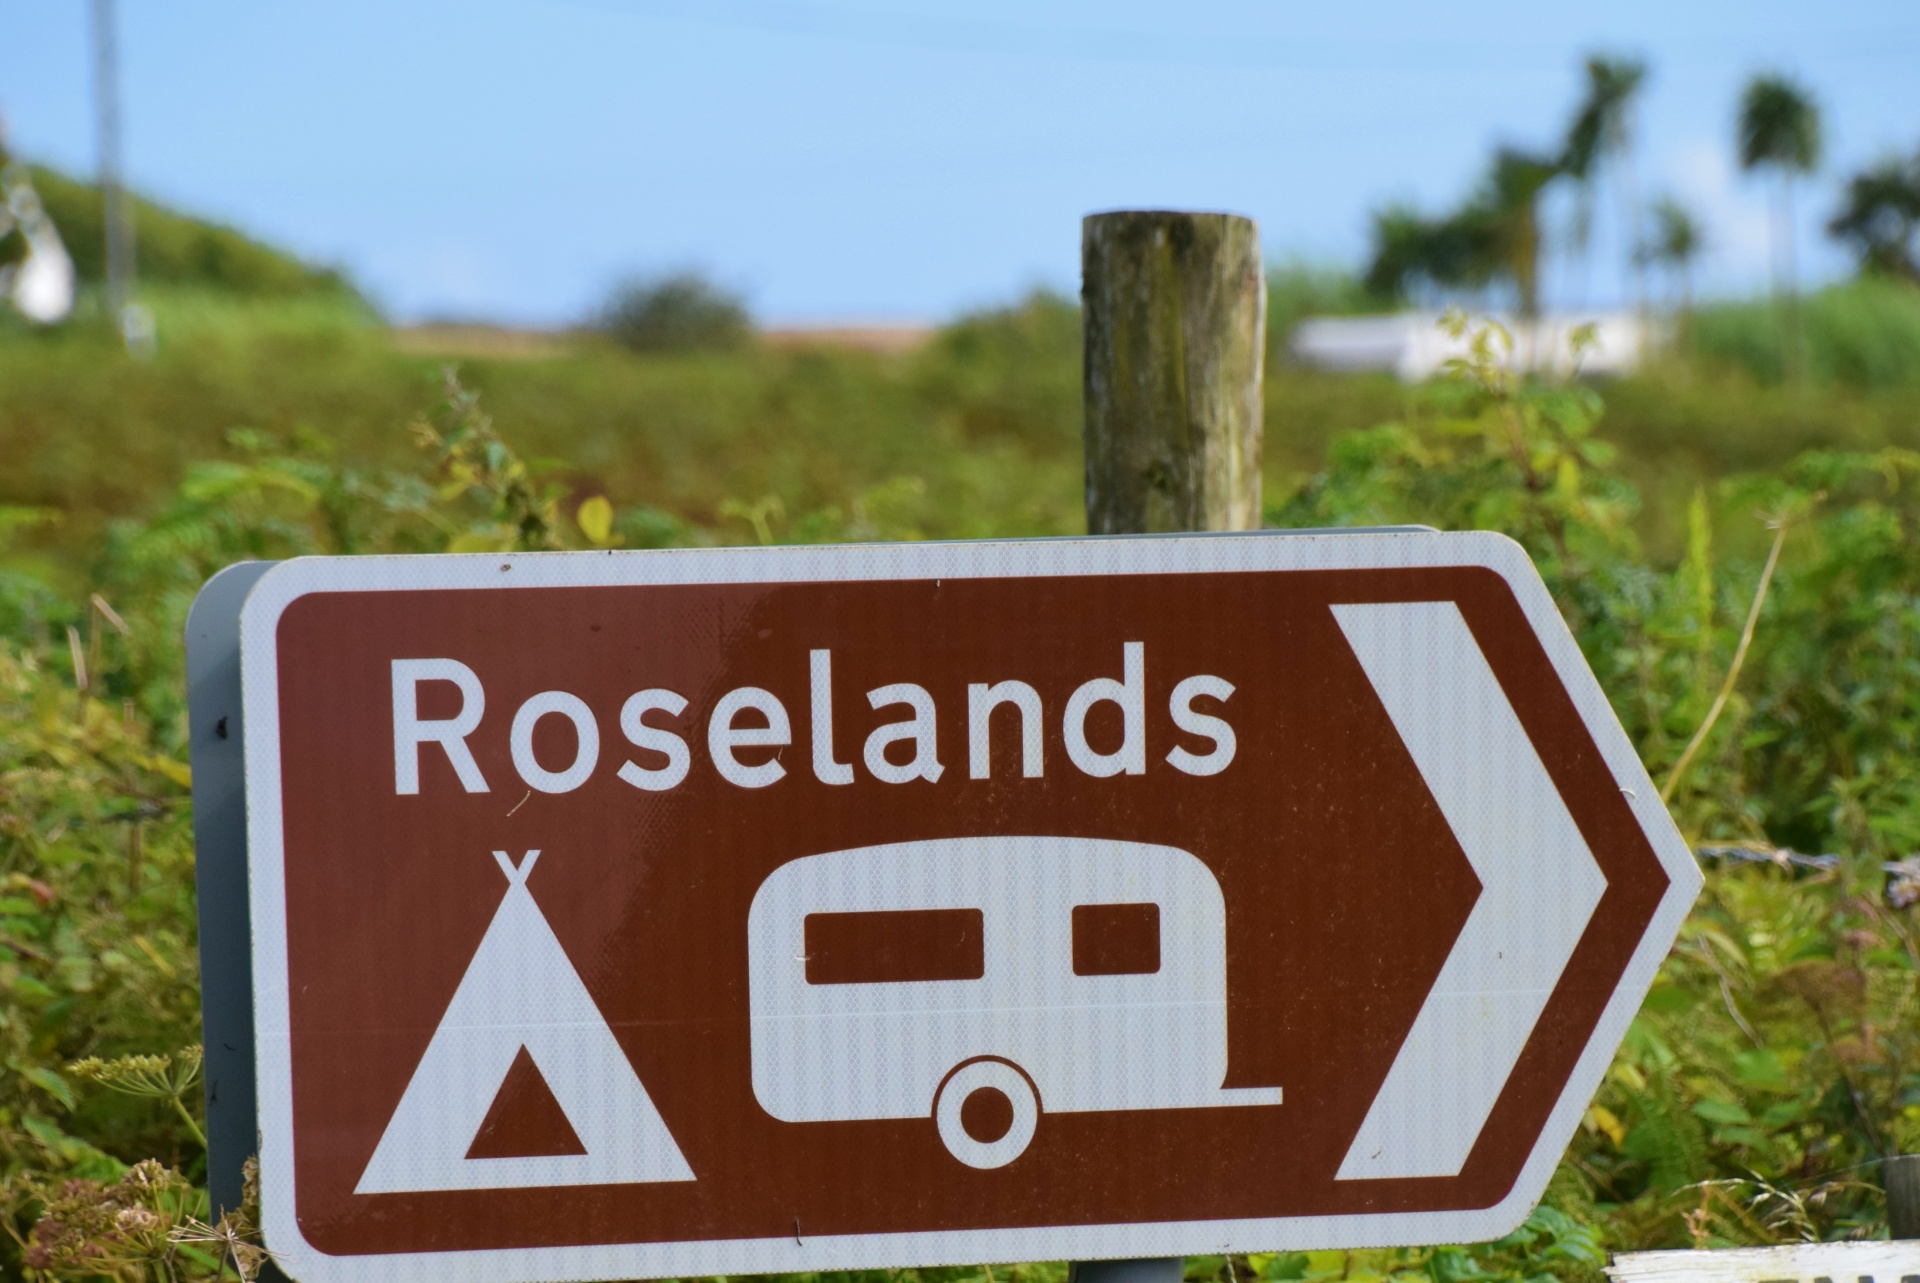 Directions to Roselands caravan park